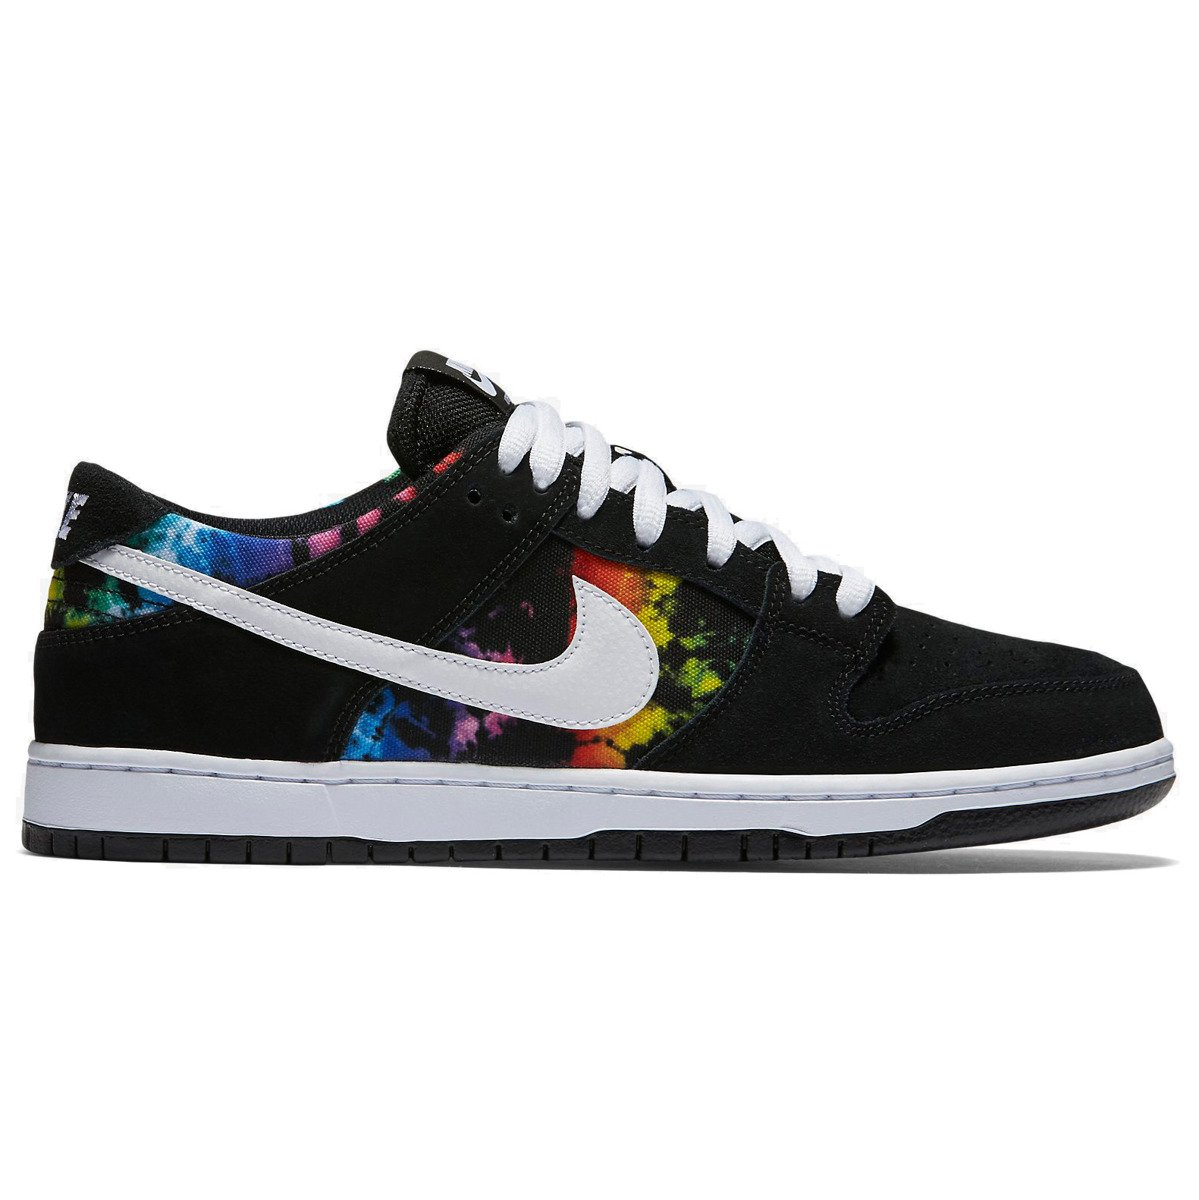 brand new 77c0f 63068 Buty Nike SB Dunk Low Pro Ishod Wair Deep Royal white-gym Red Click to zoom  ...